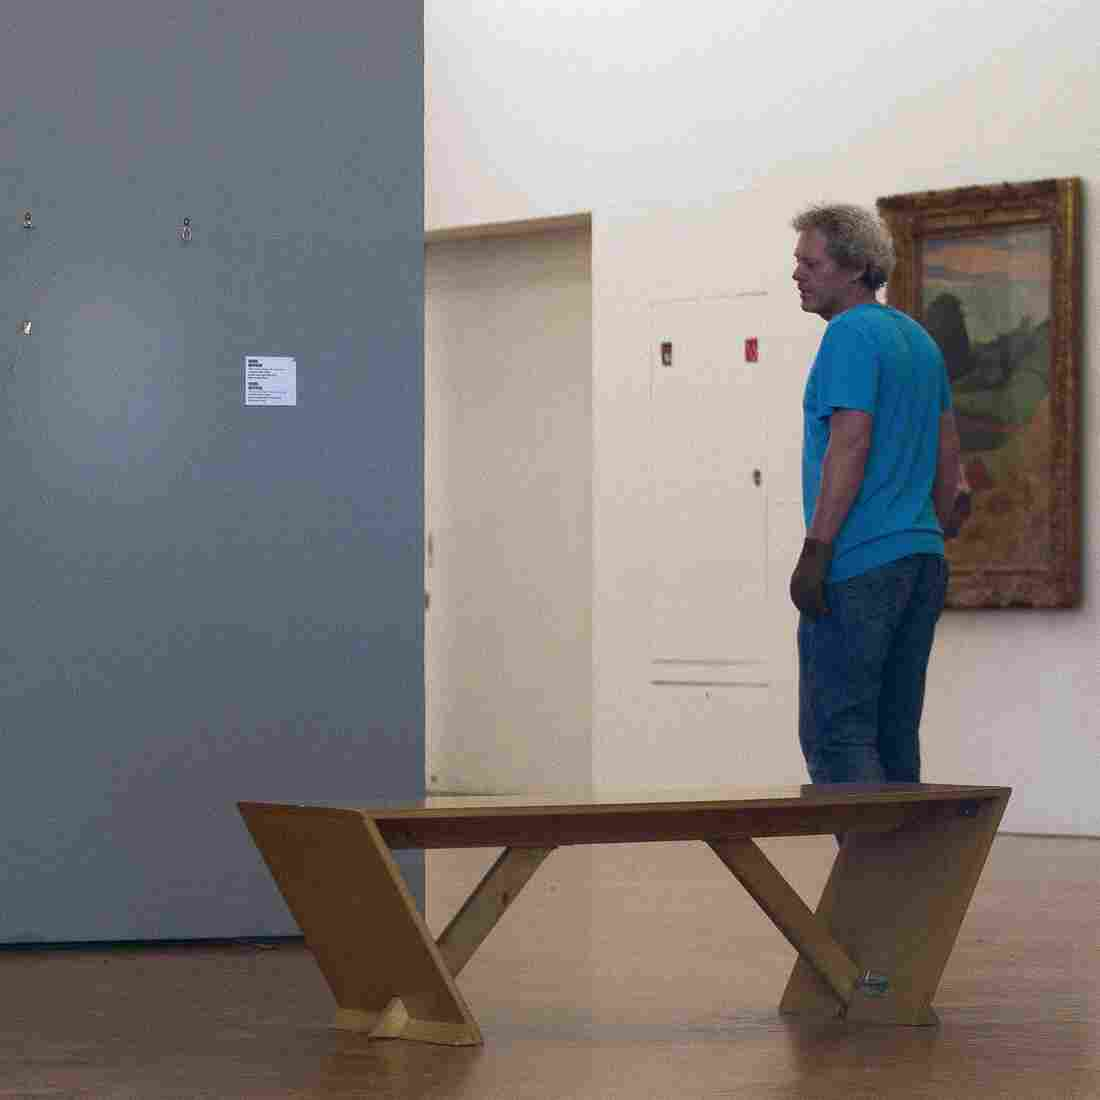 Picasso, Monet Paintings Among Those Swiped From Dutch Museum